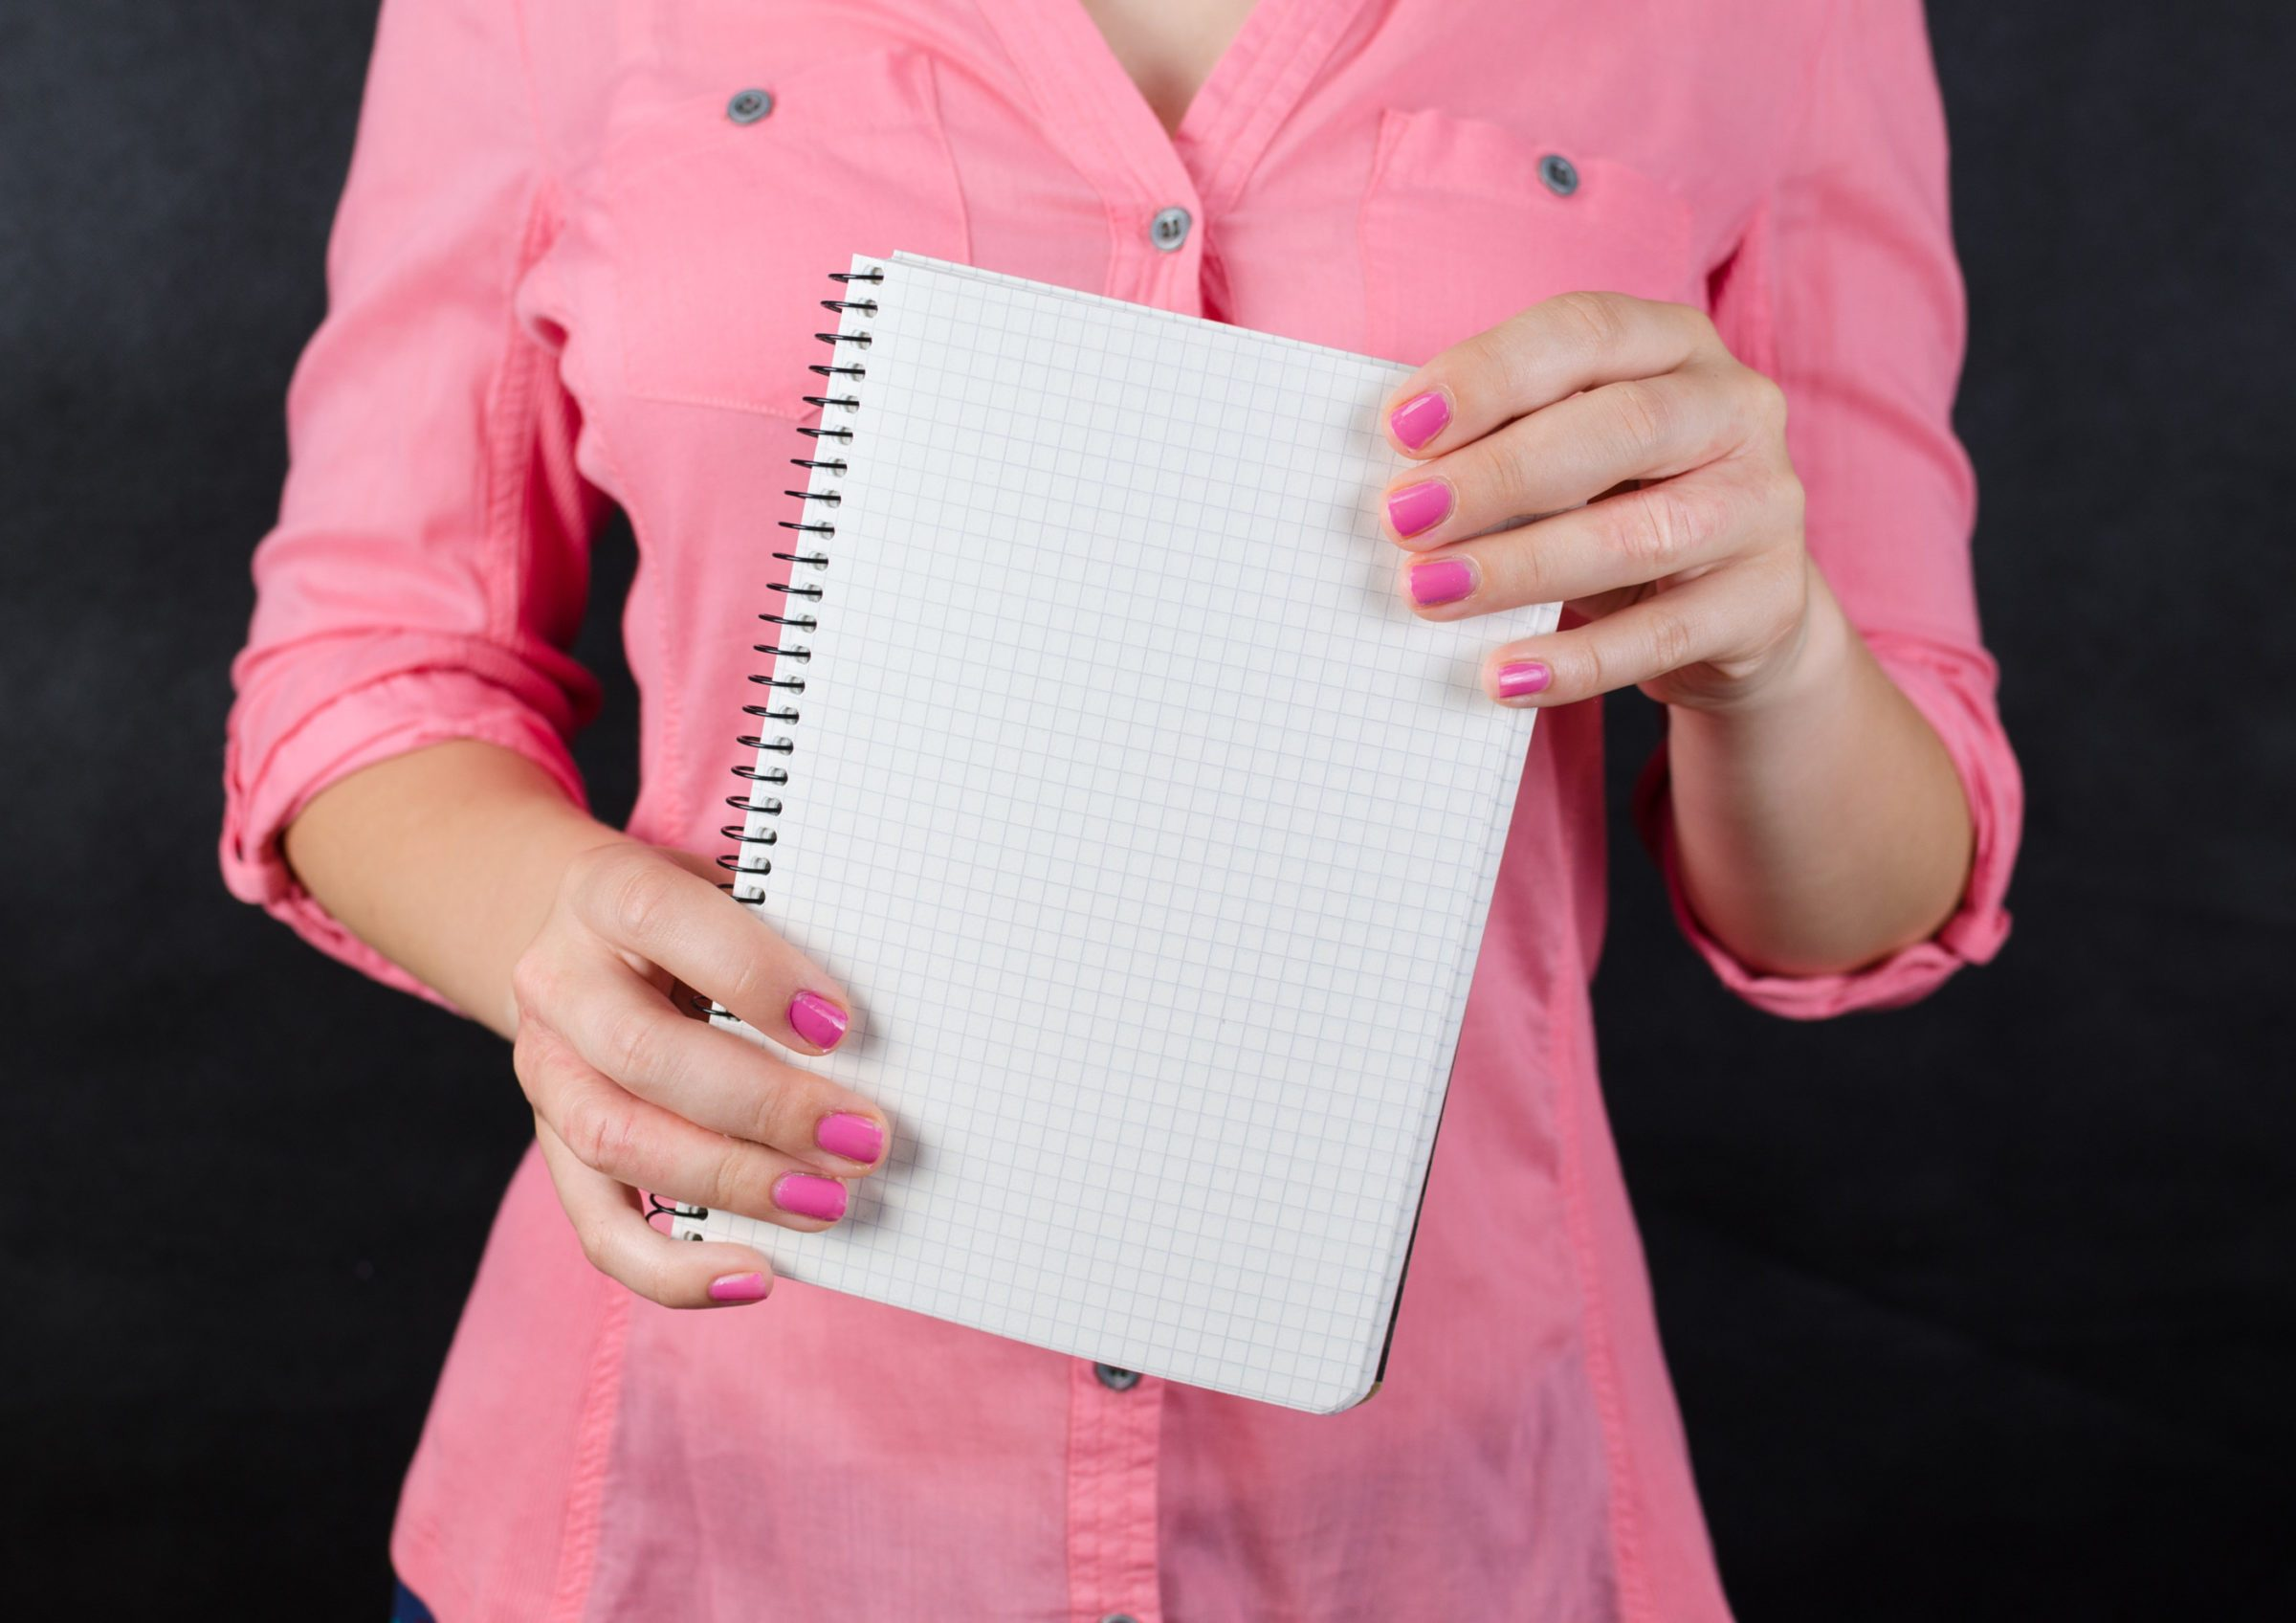 woman in pink shirt holding spiral notebook